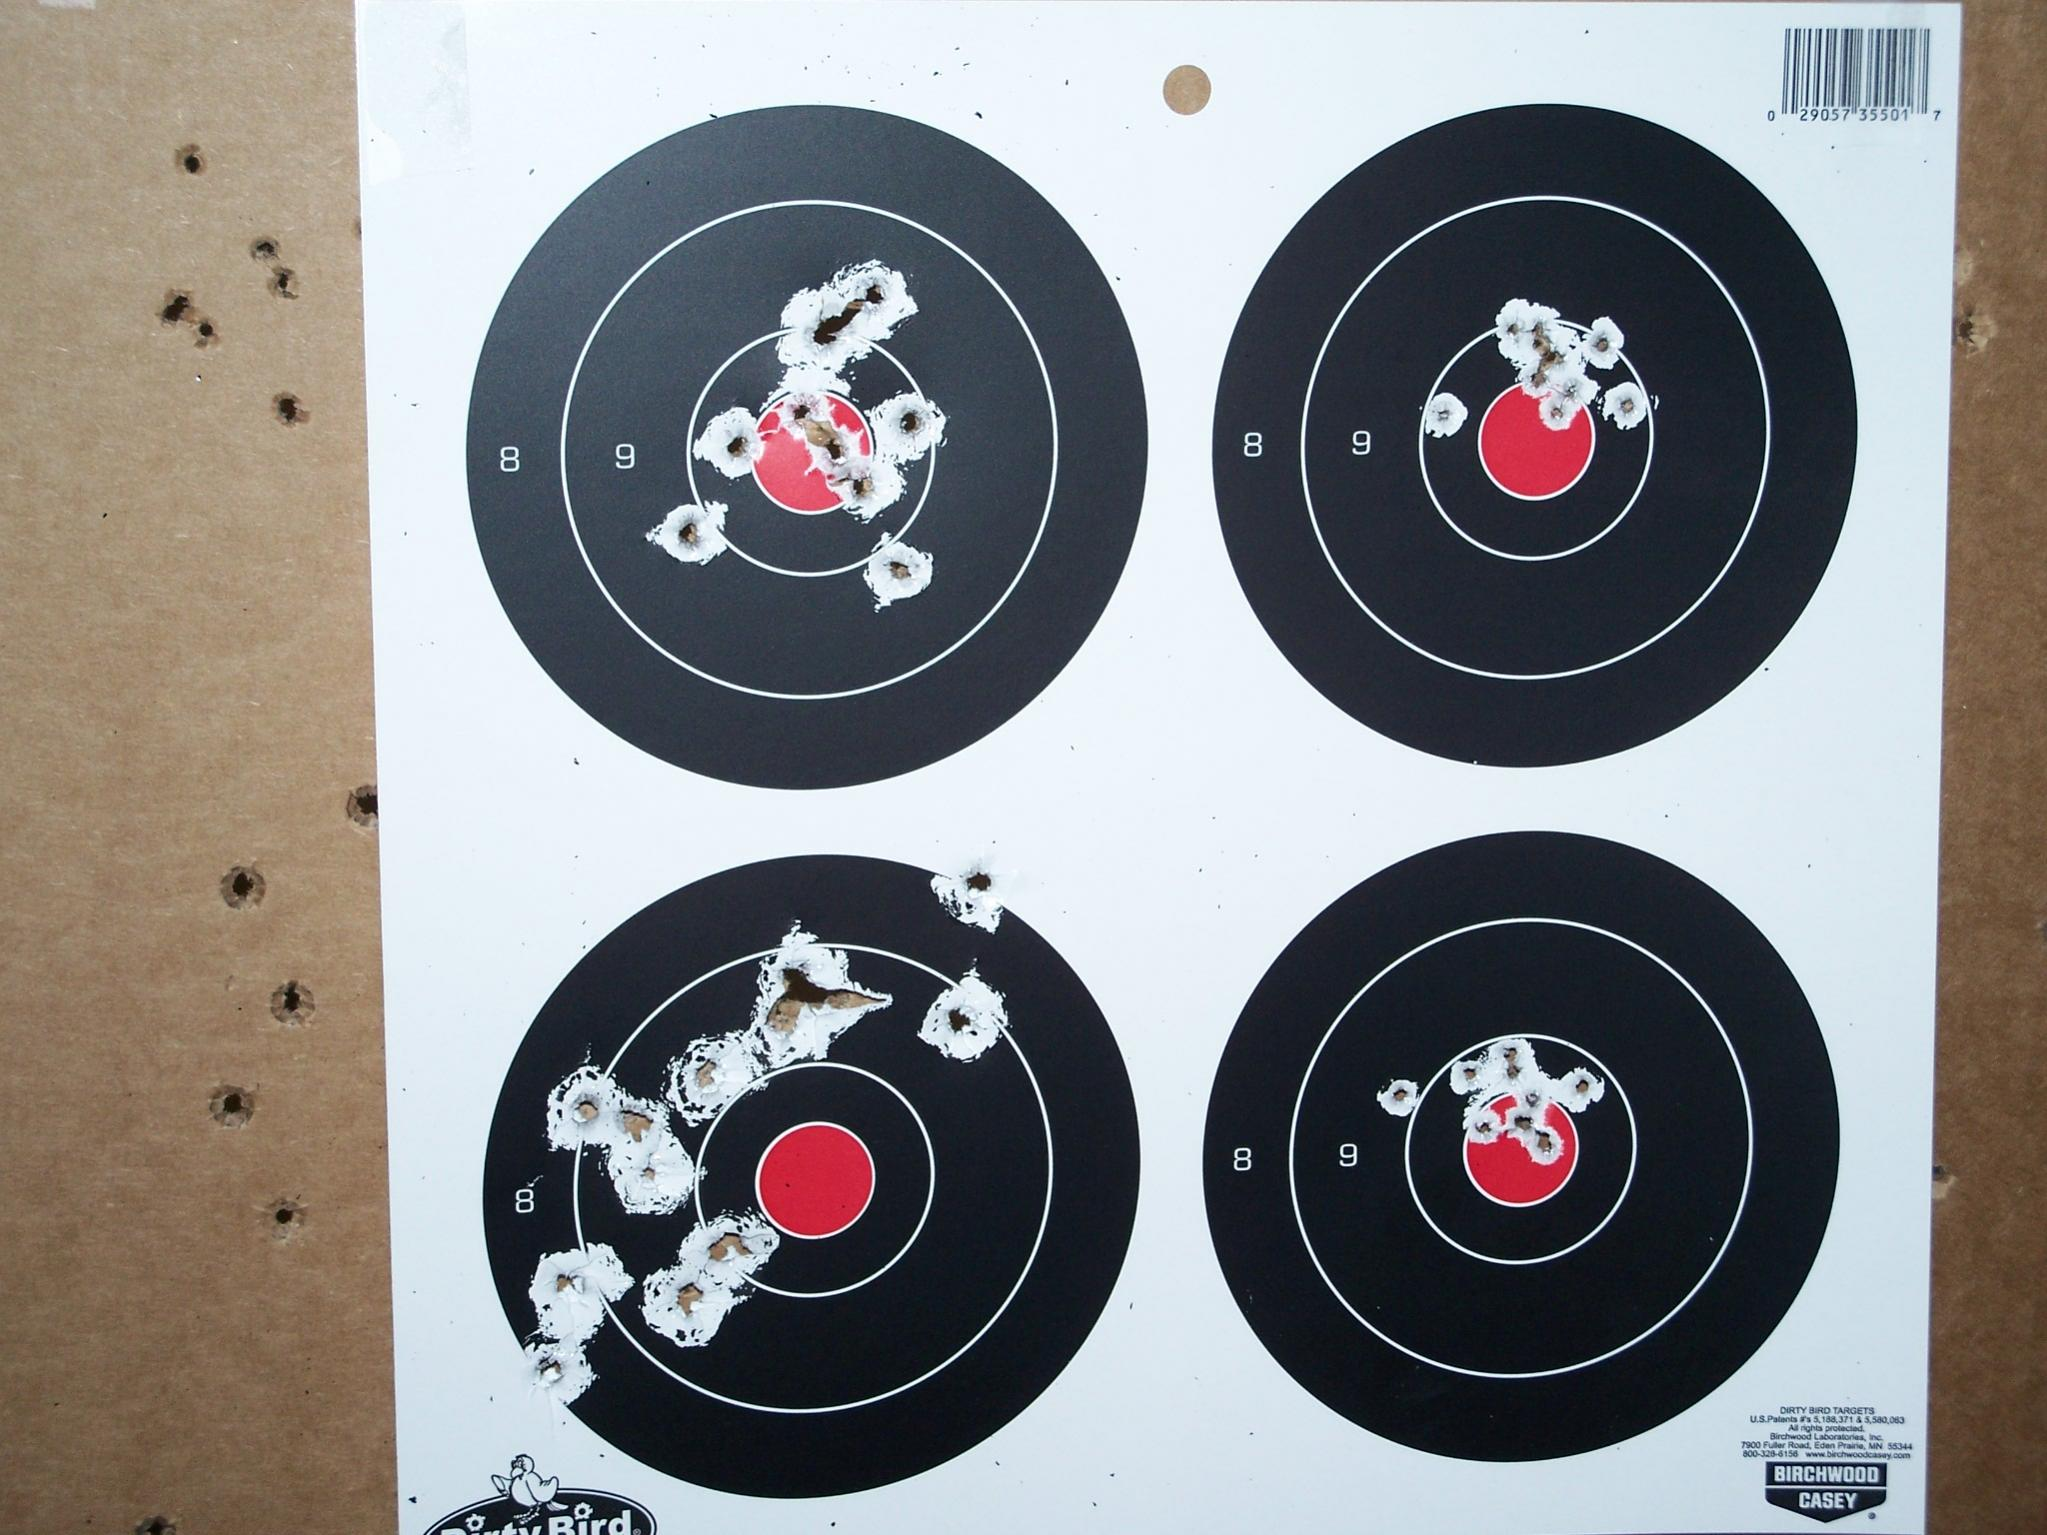 My trip to the range with pics-101_6176.jpg